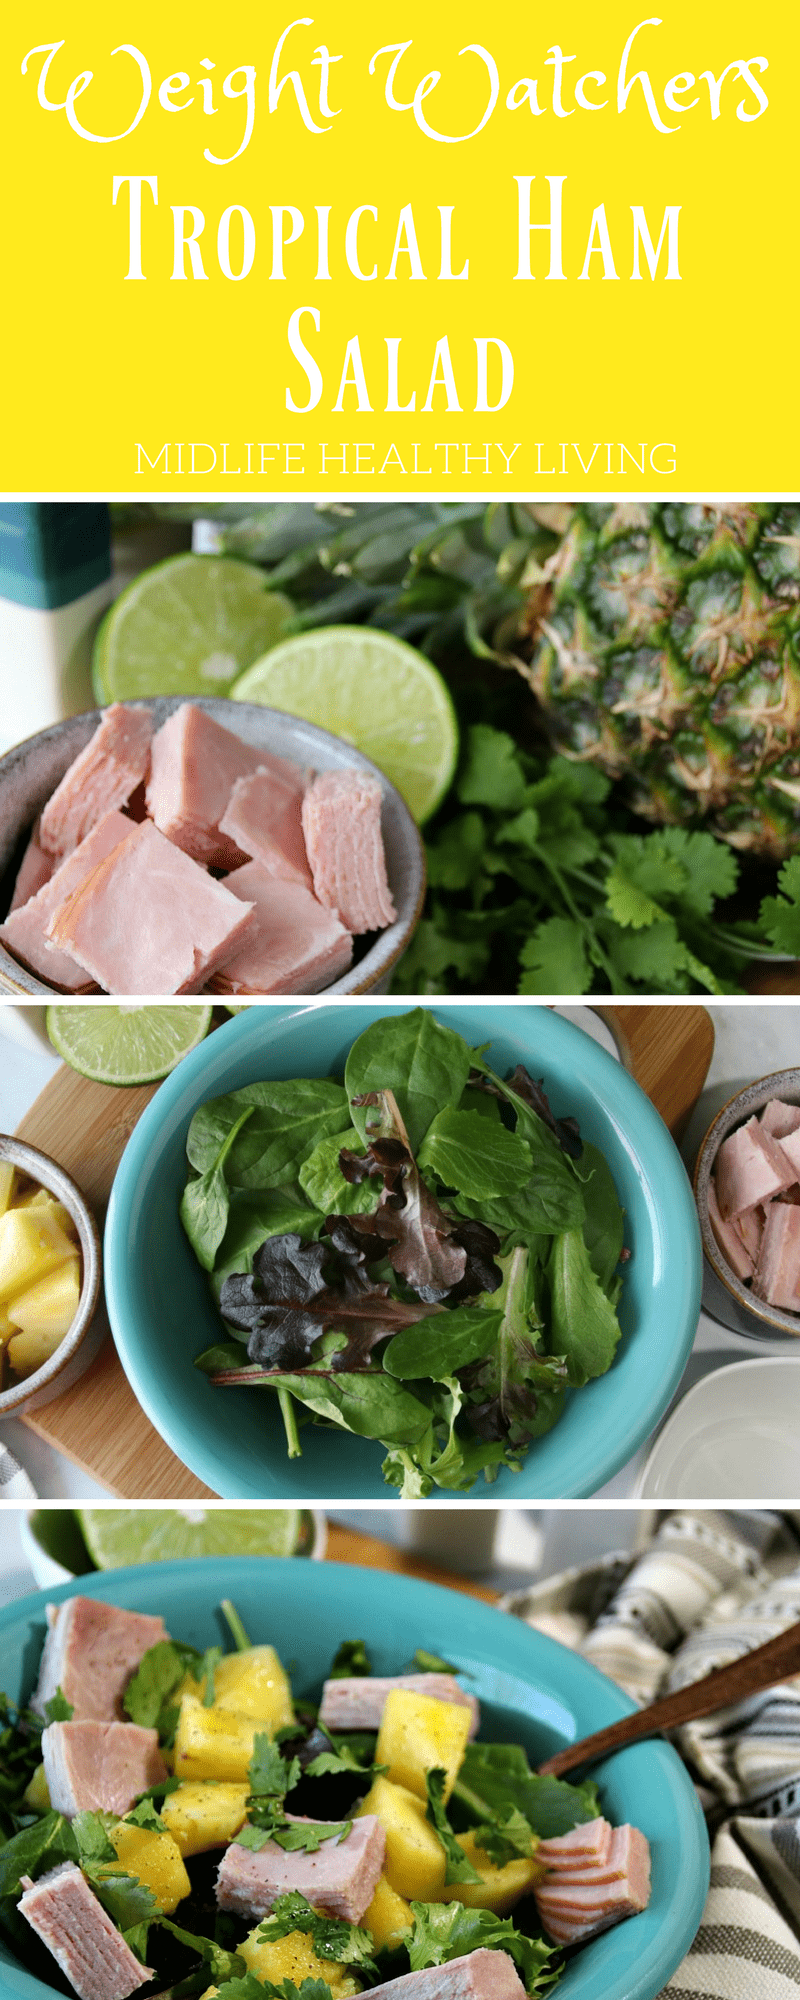 This Weight Watchers Tropical Ham Salad is so simple and only takes a few minutes to make. There is only 3 Weight Watchers Freestyle Smart Points in each serving!